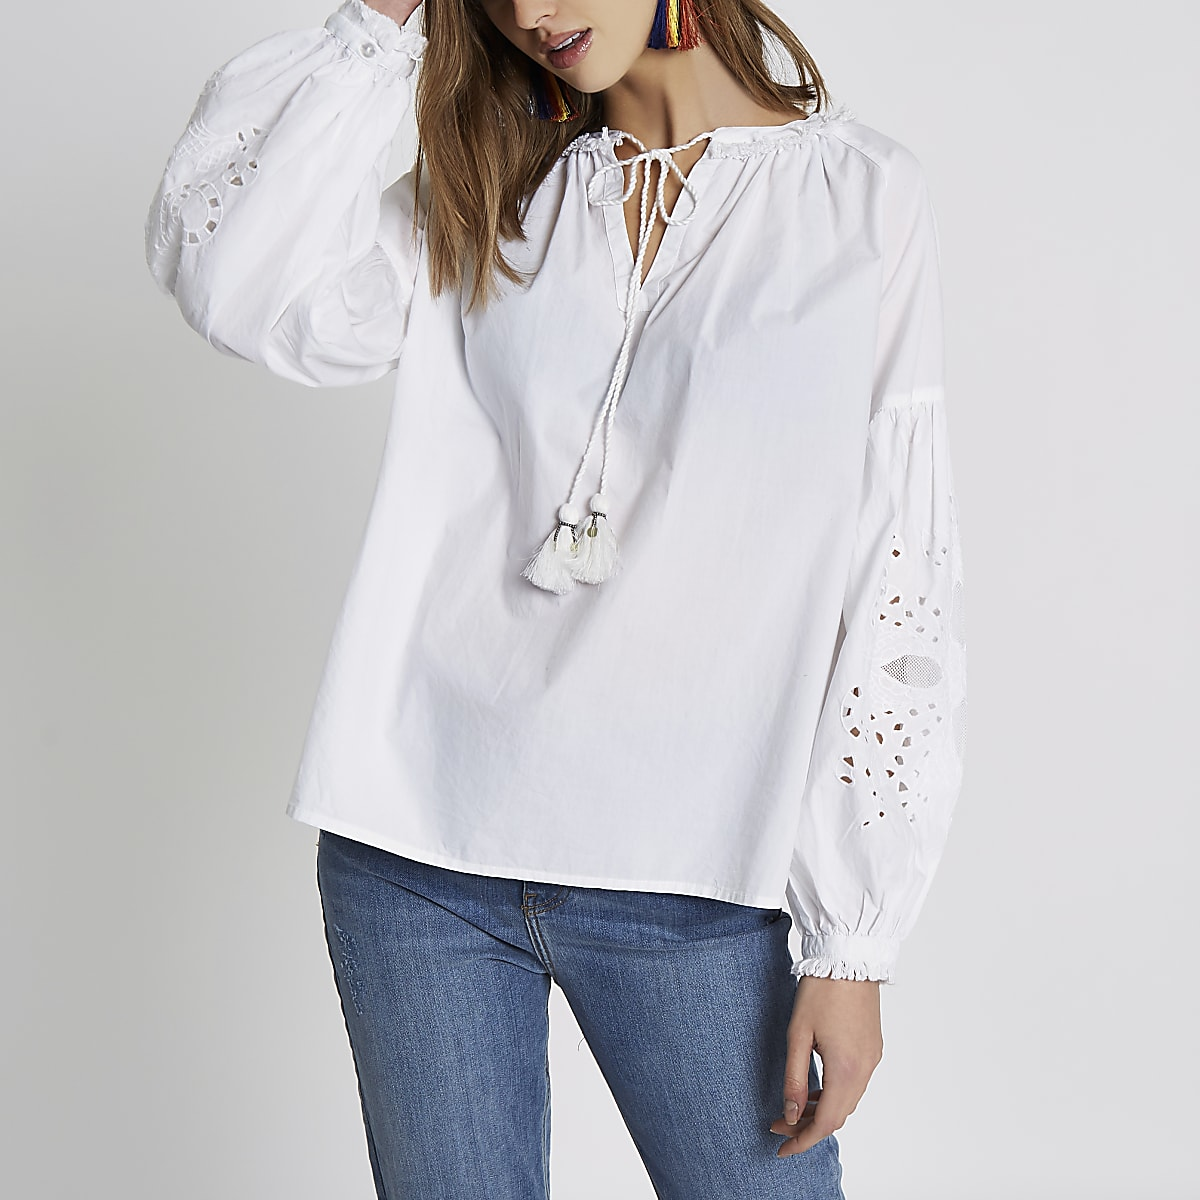 c9a171a03c8c46 White tassel detail broderie sleeve top - Blouses - Tops - women